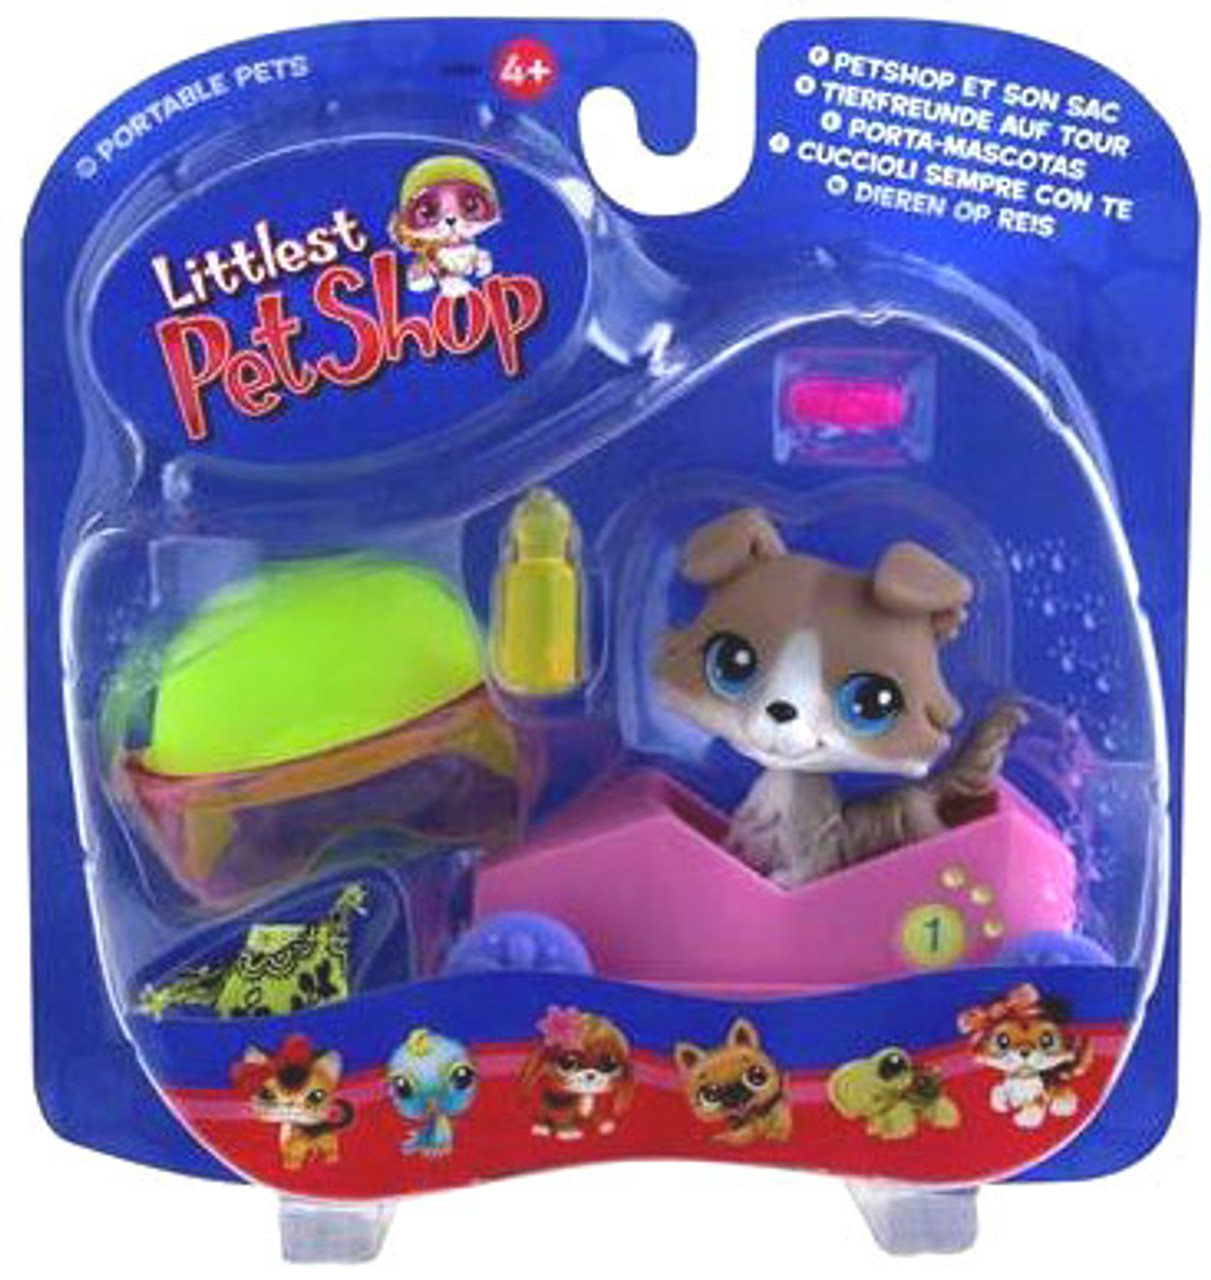 Littlest Pet Shop Portable Pets Collie Figure [Speedy Boxcar]